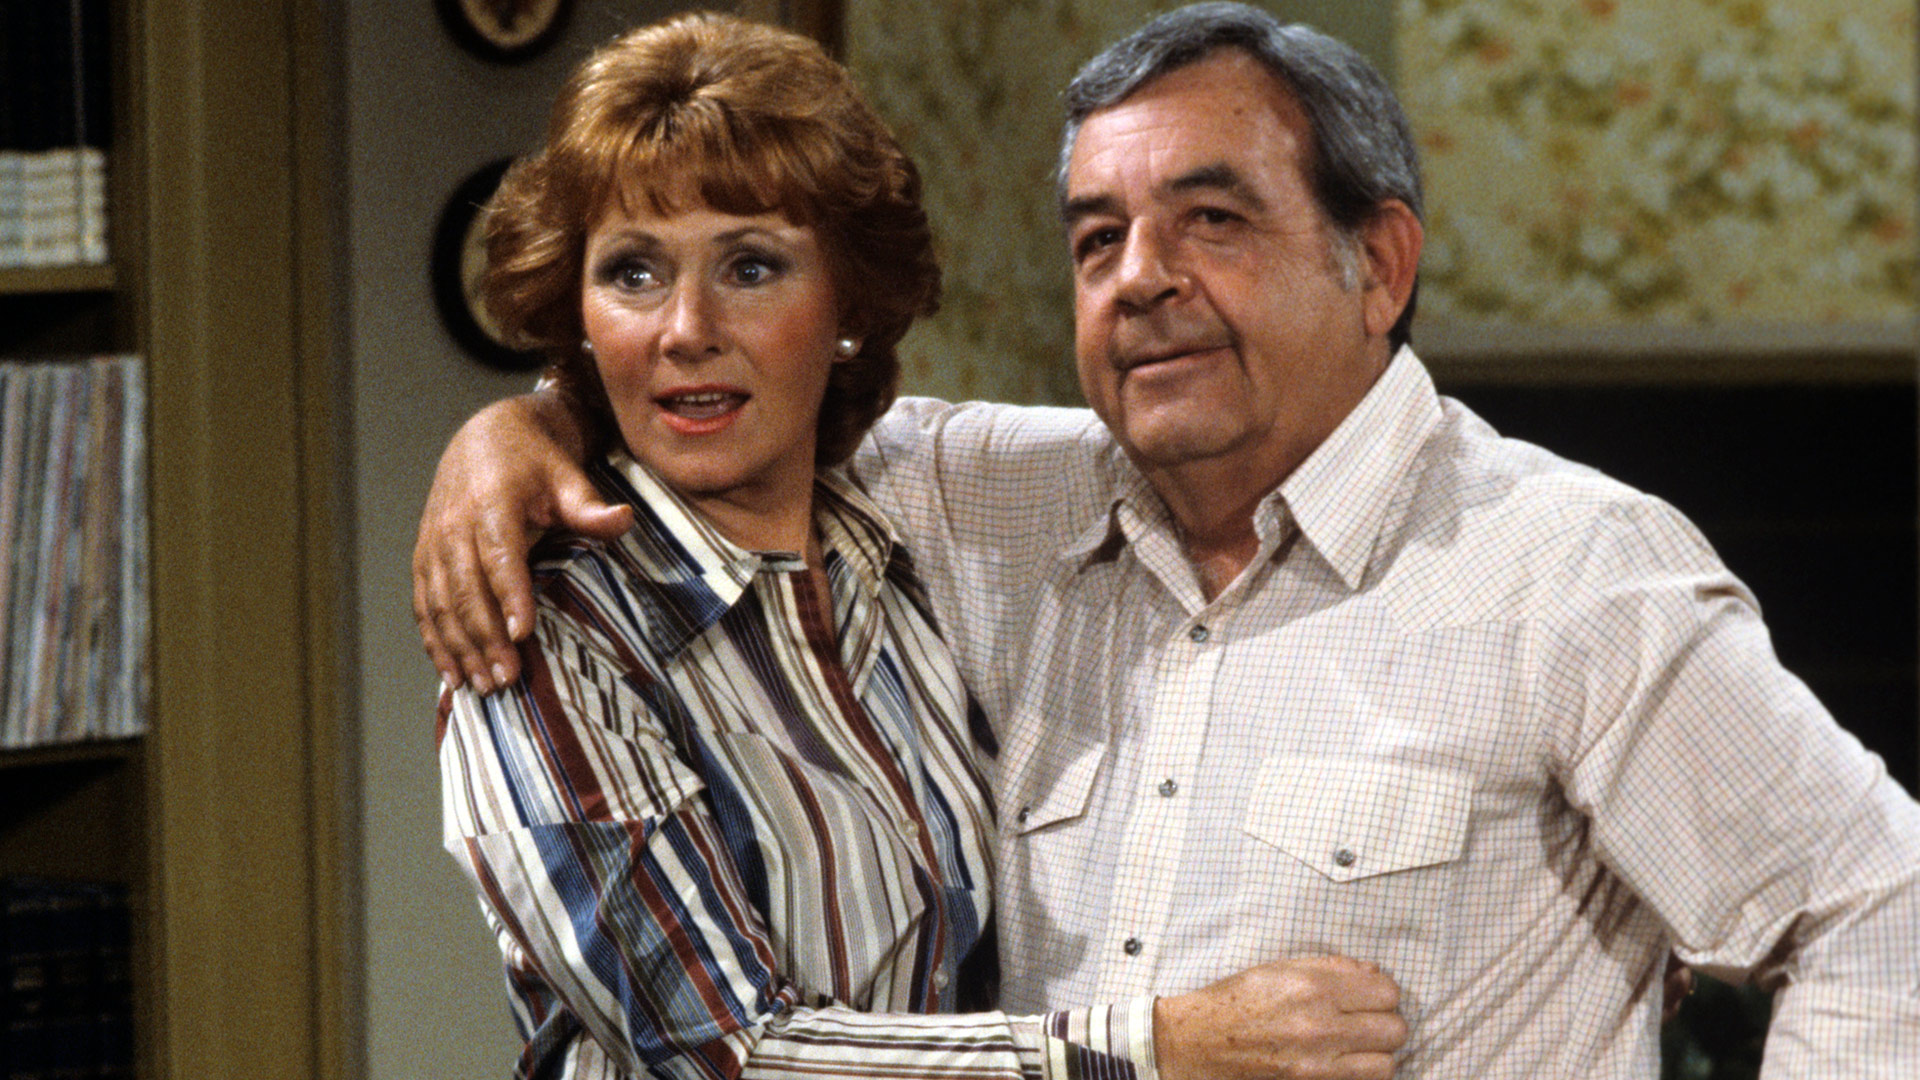 Howard and Marion Cunningham, Happy Days